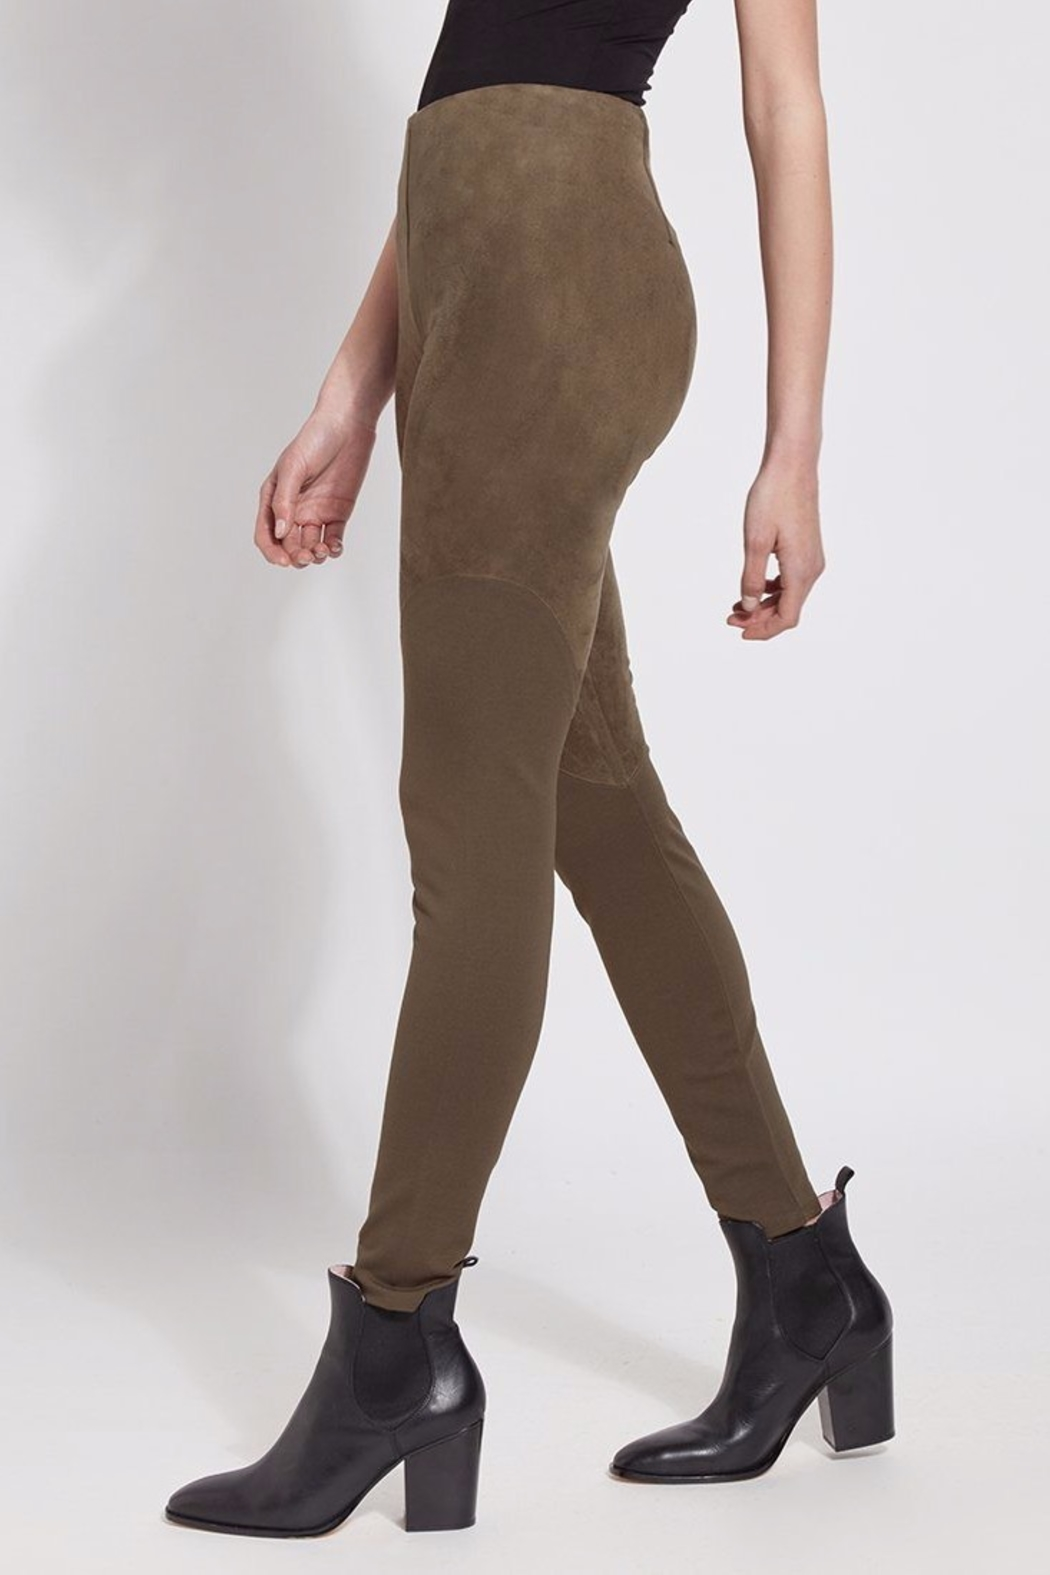 Lyssé Faux Suede Angle Seam Leggings - Side Cropped Image